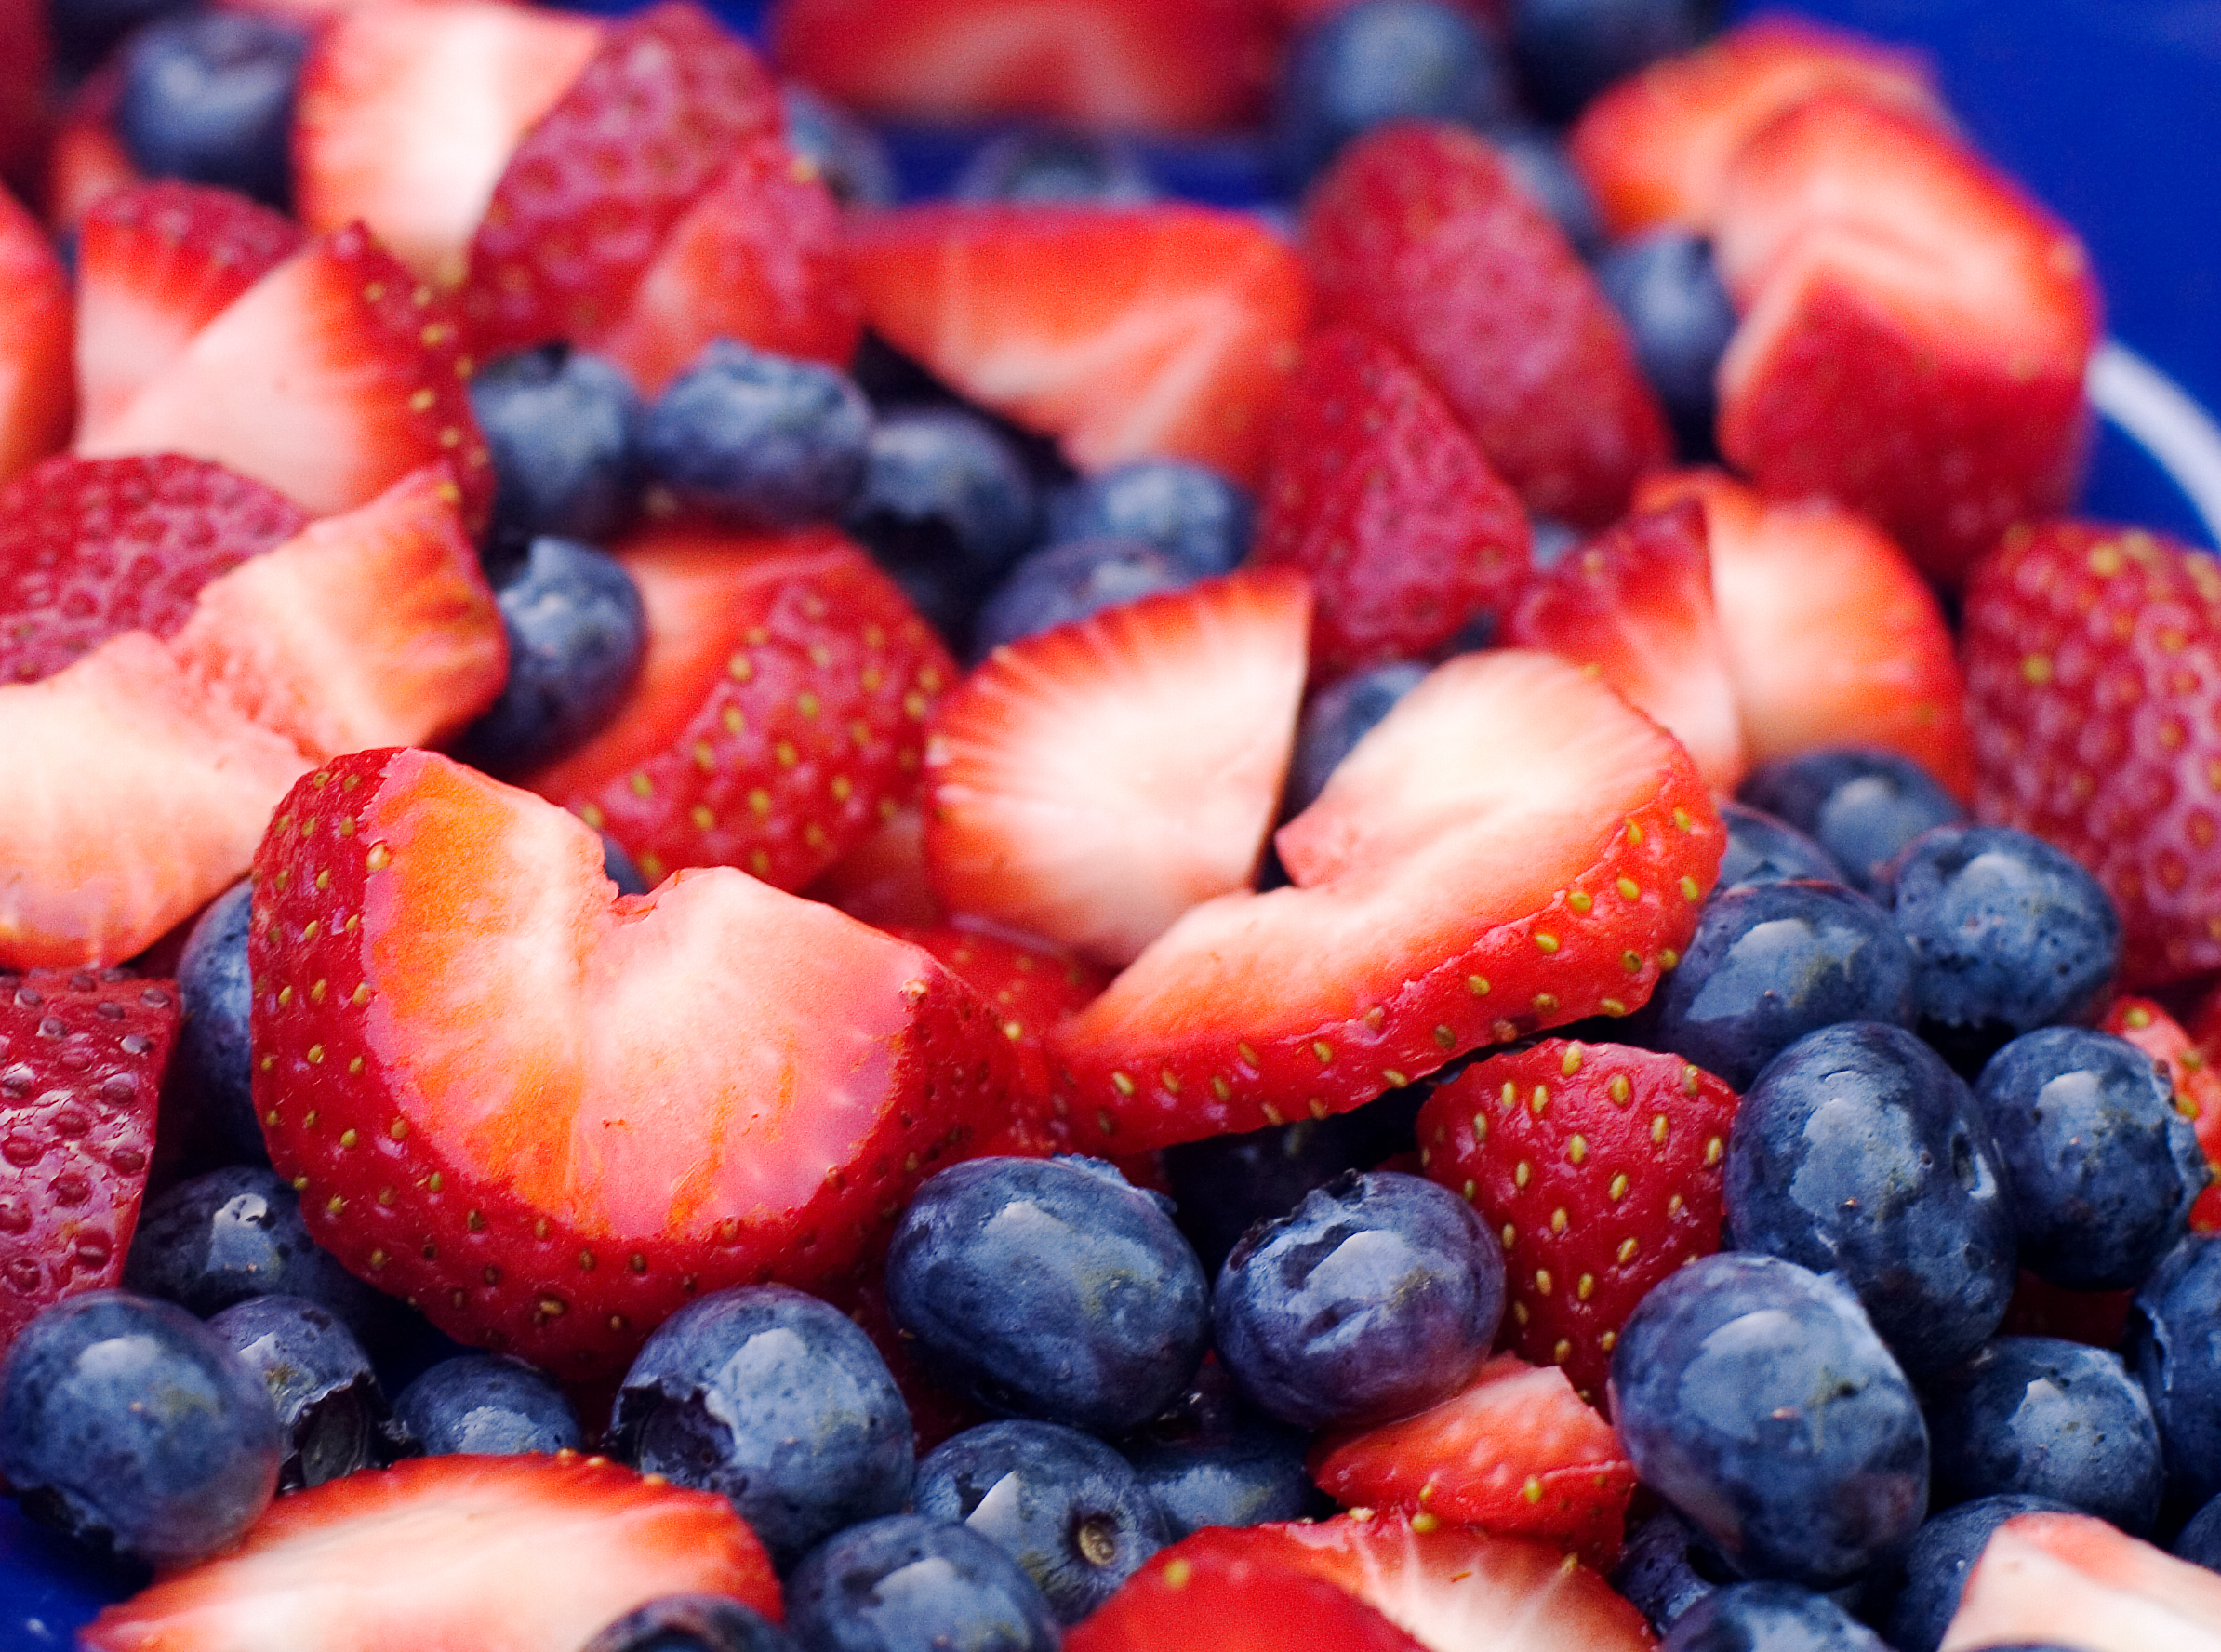 Not only are blueberries and strawberries delicious, they are also good for the brain!